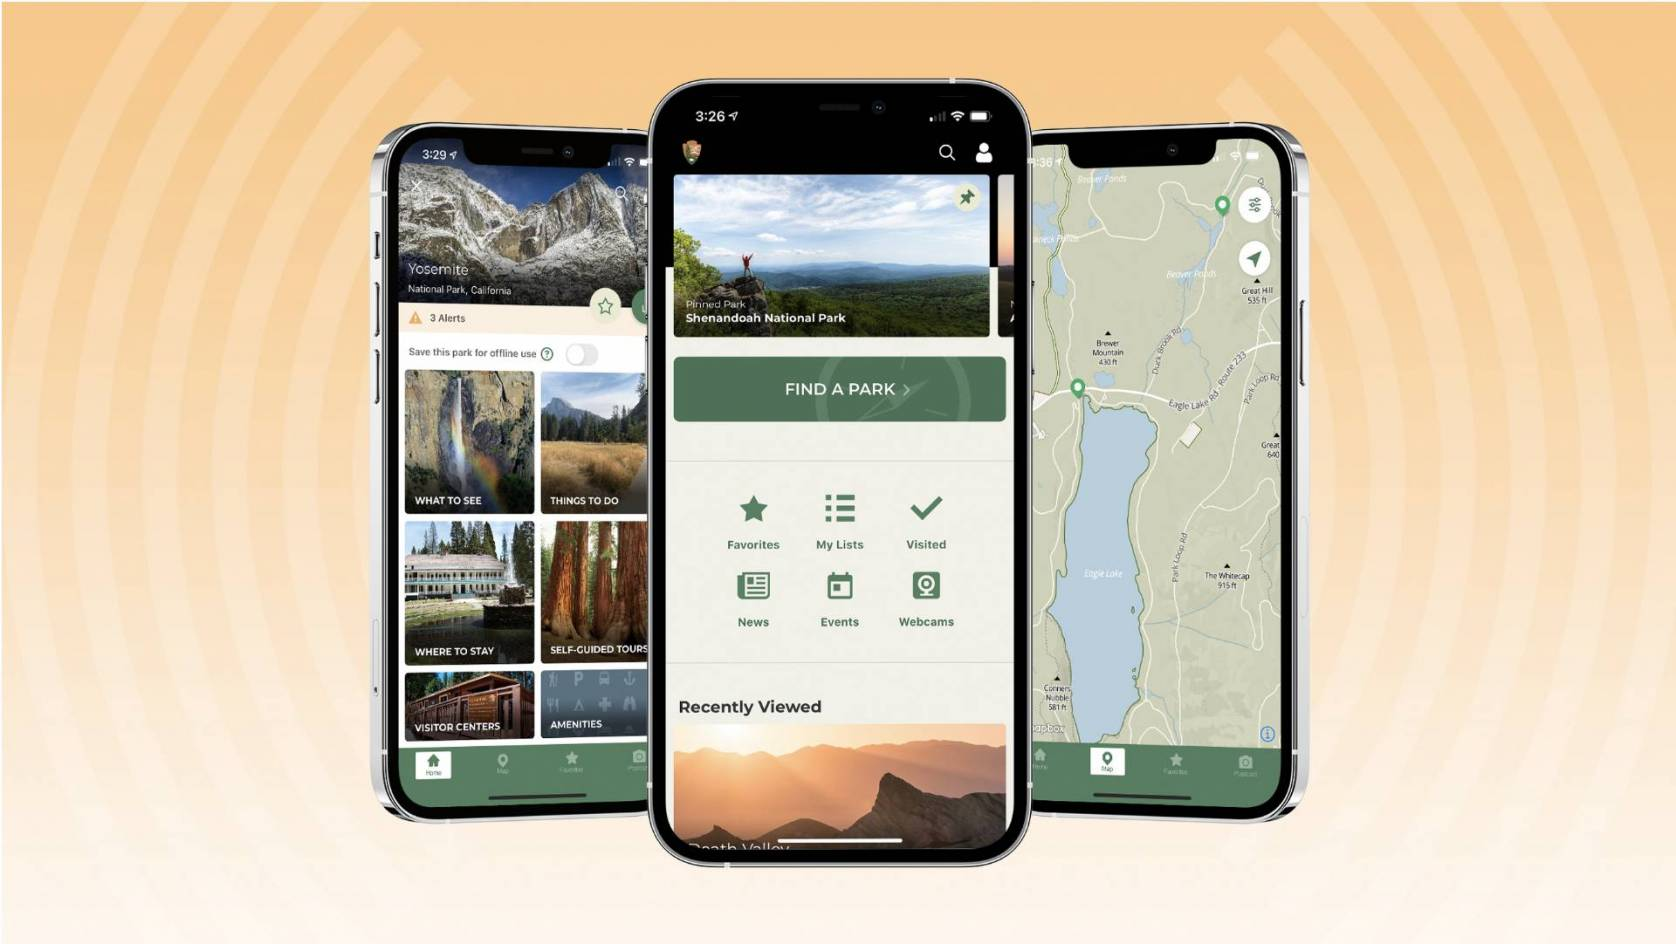 national parks app interface on smartphone screen